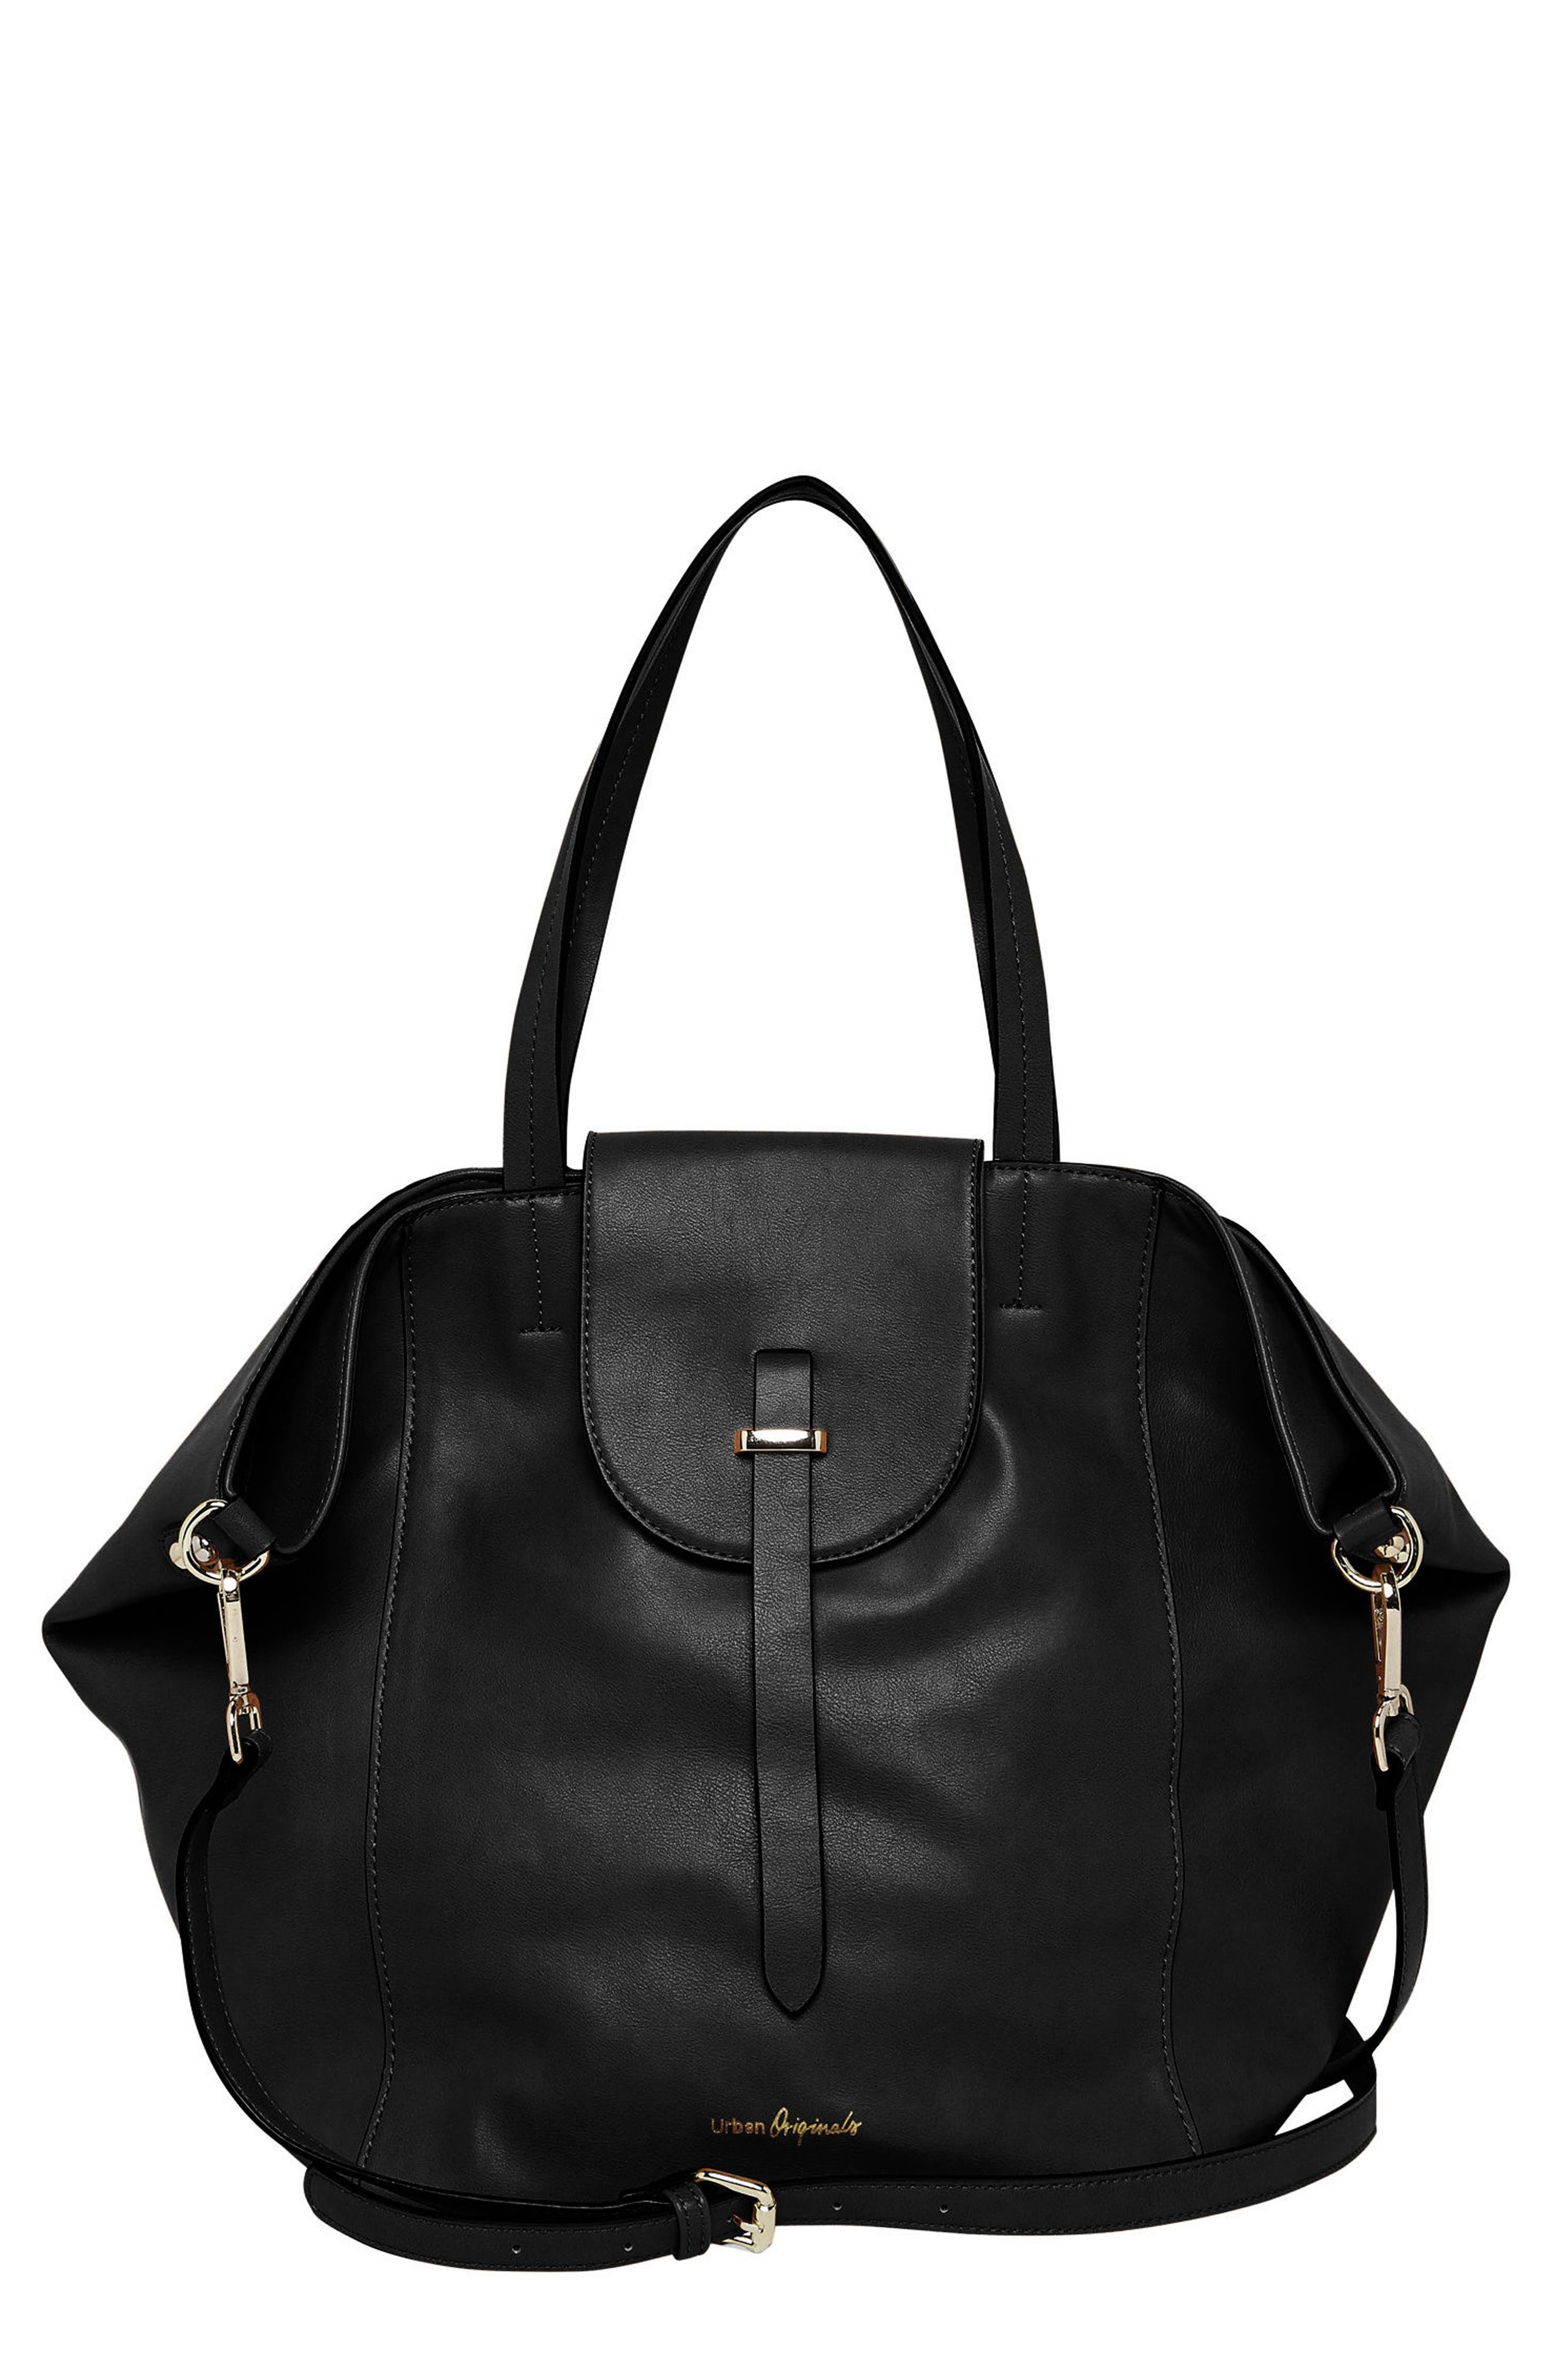 URBAN ORIGINALS Urban Orginals Desire Vegan Leather Bucket Bag, Main, color, 001